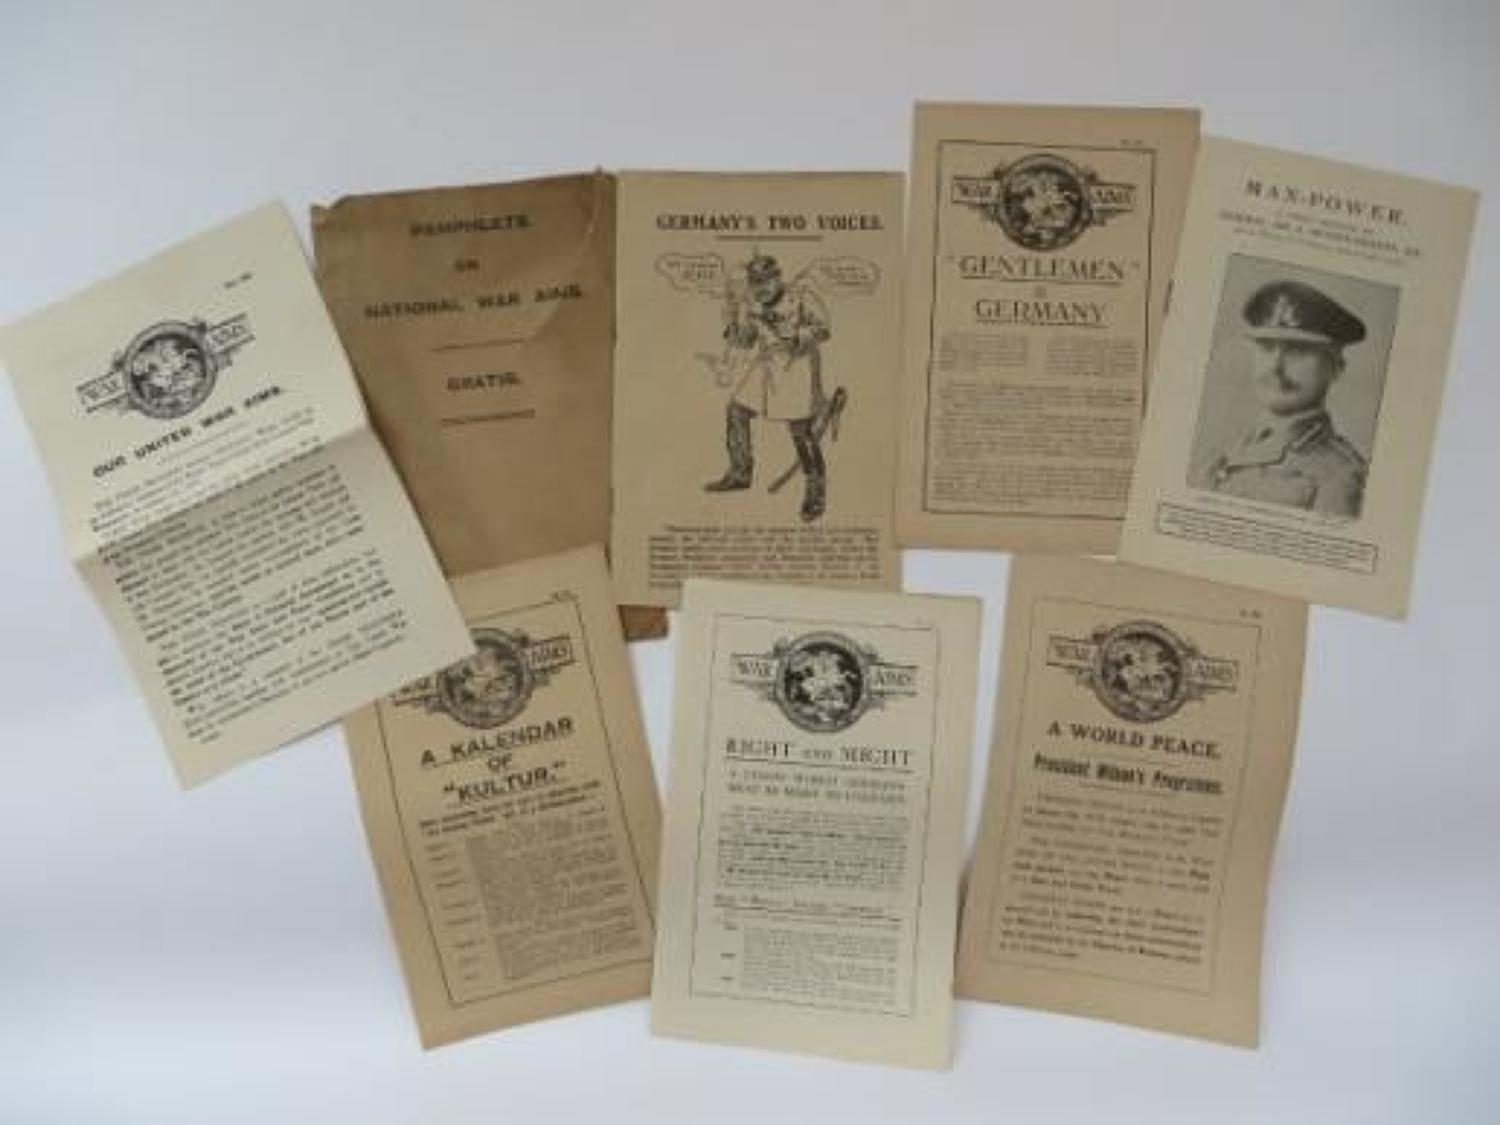 Inter War Pamphlets on National War Aims